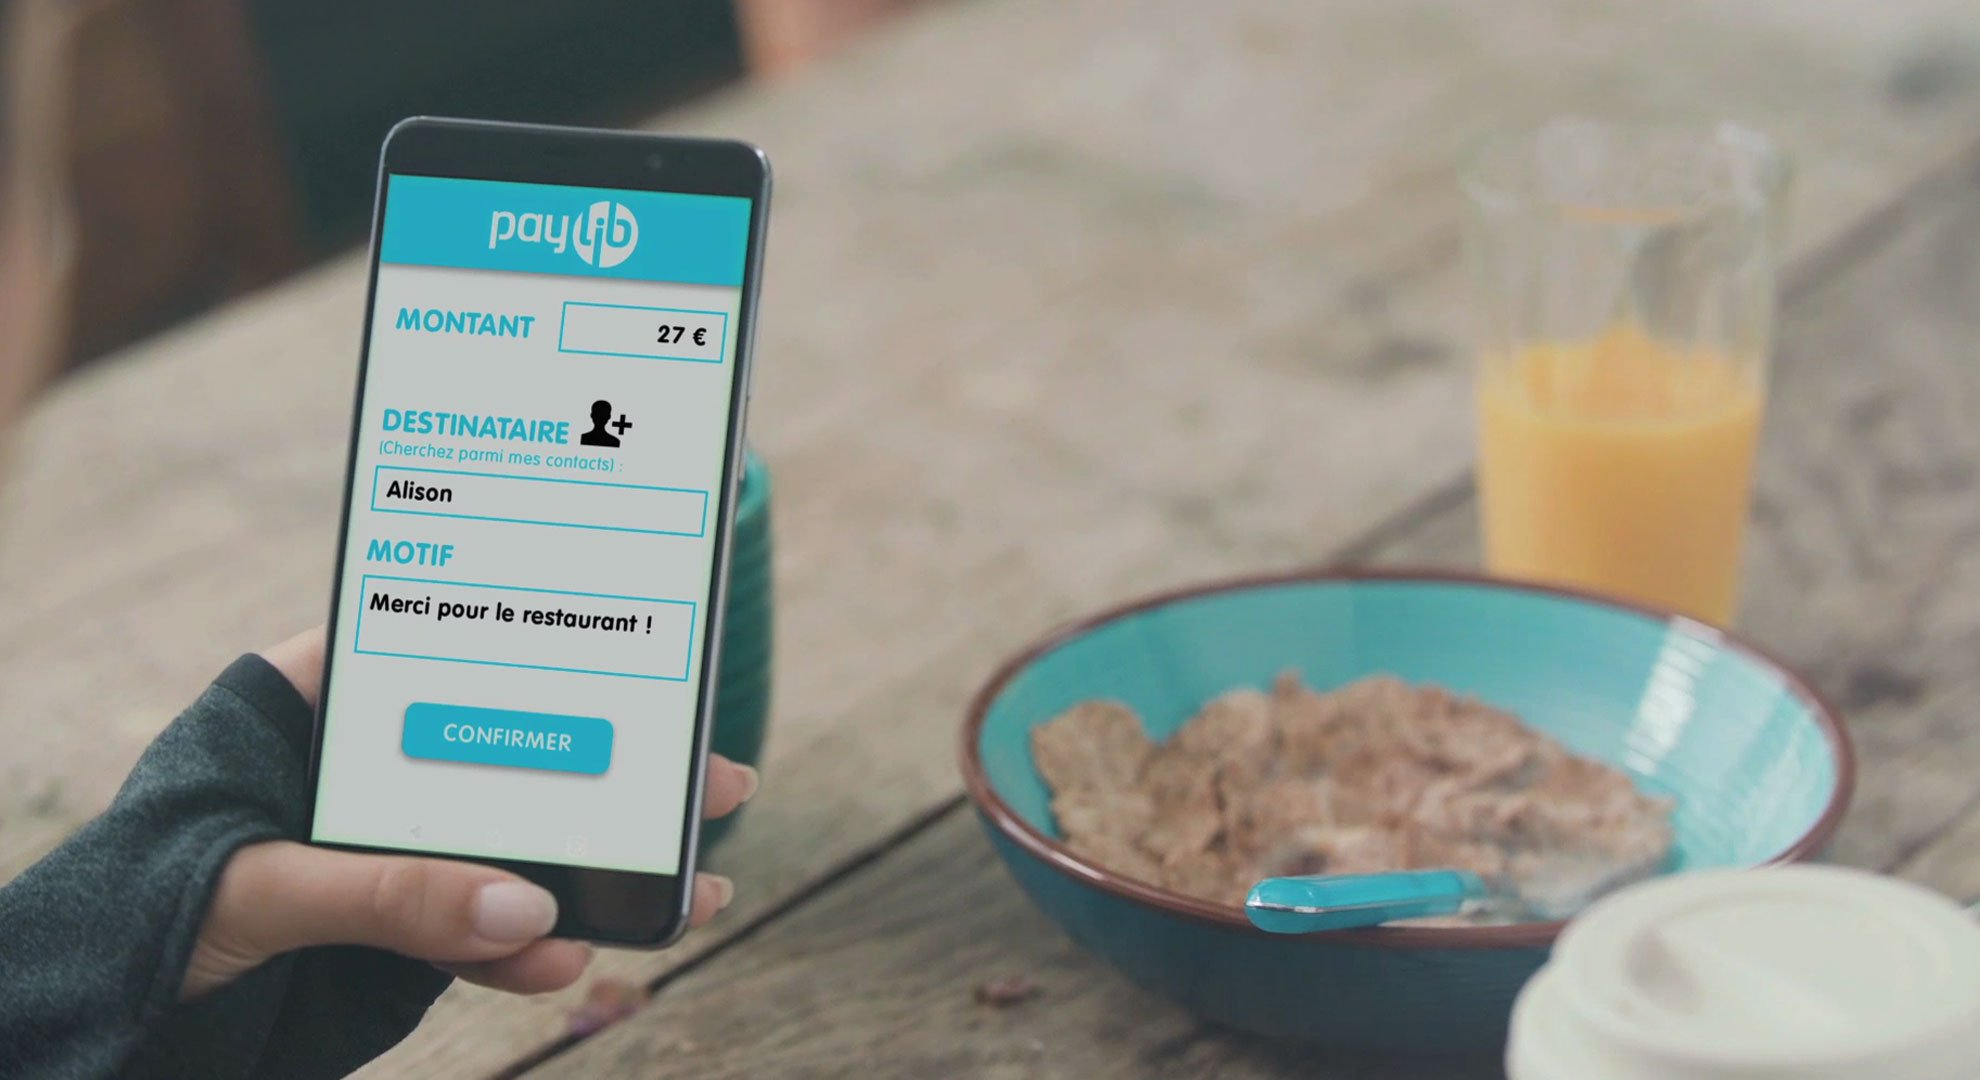 Paylib turns online purchases into accessible and secure transactions